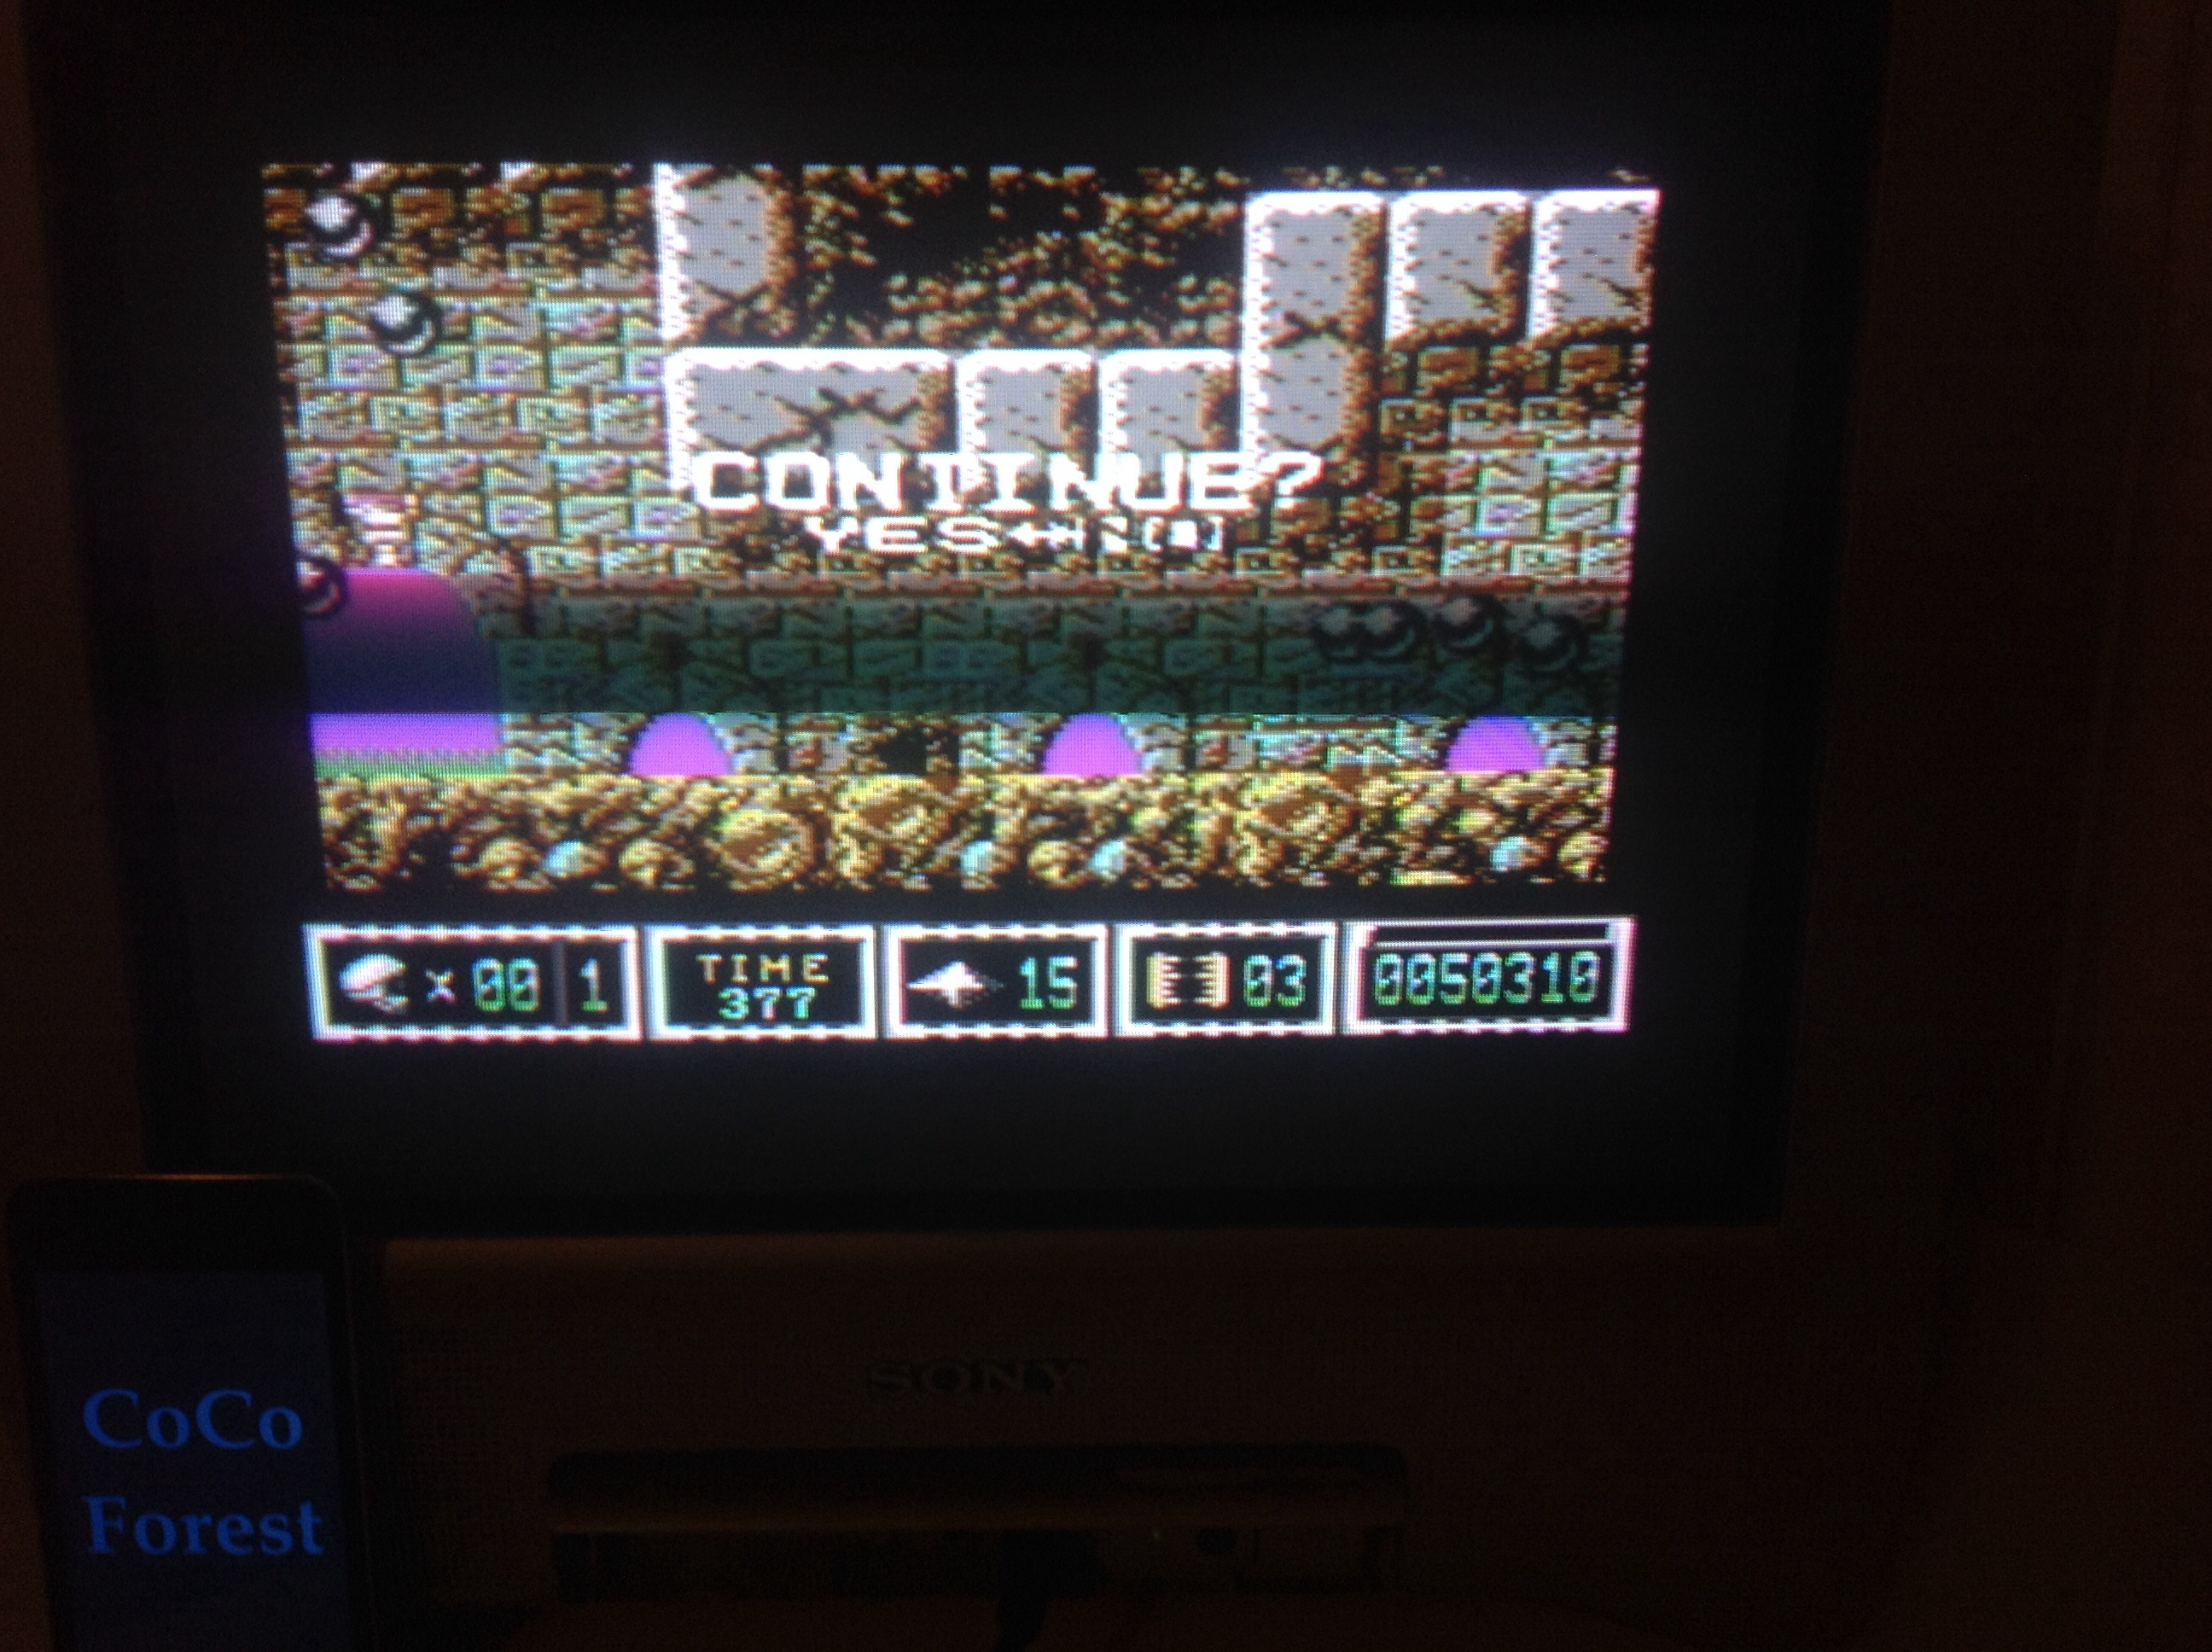 CoCoForest: Turrican 2 (Commodore 64) 50,310 points on 2015-03-22 14:20:05